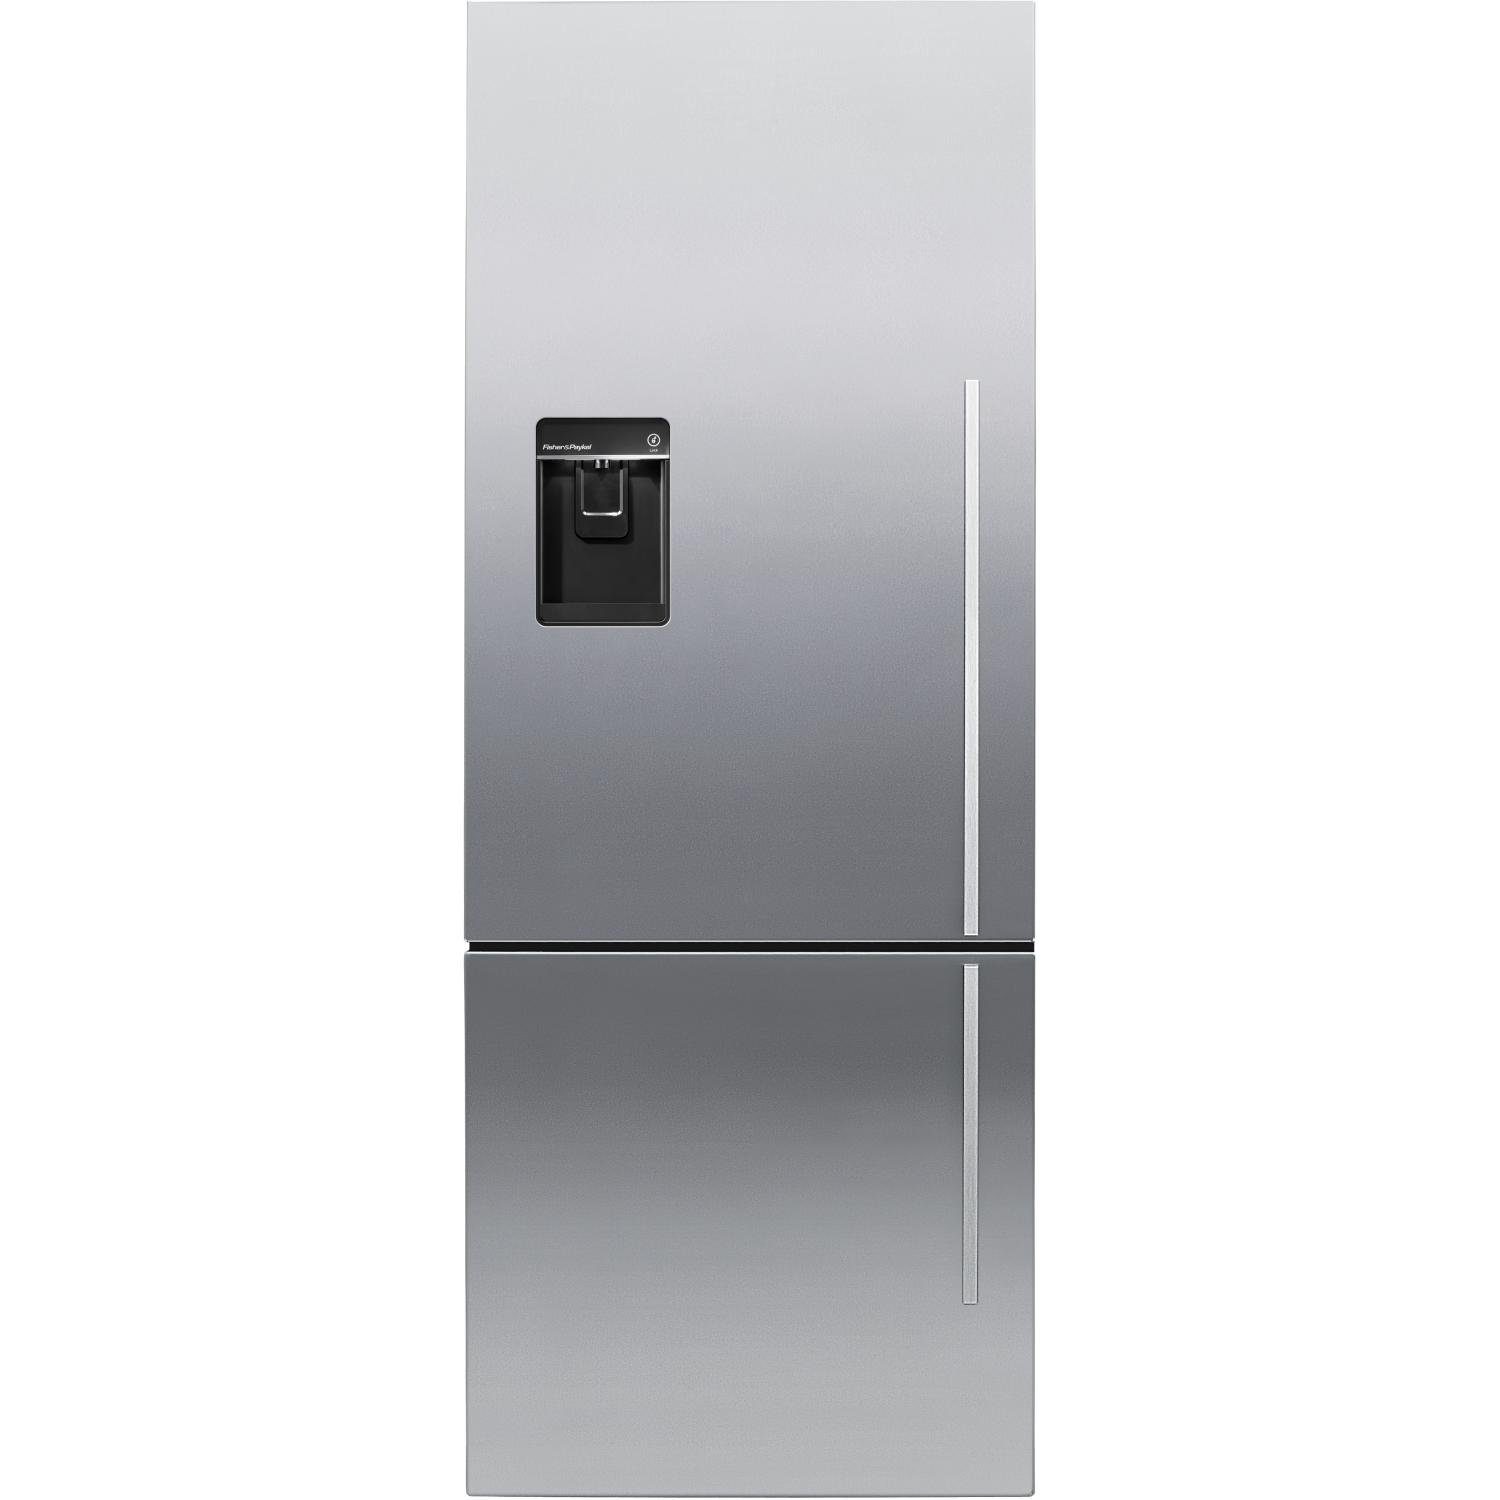 Amazon.com: Fisher Paykel RF135BDLUX4  13.5 Cu. Ft. Capacity Left Hinge  Counter Depth Bottom Freezer Refrigerator In Stainless Steel: Appliances